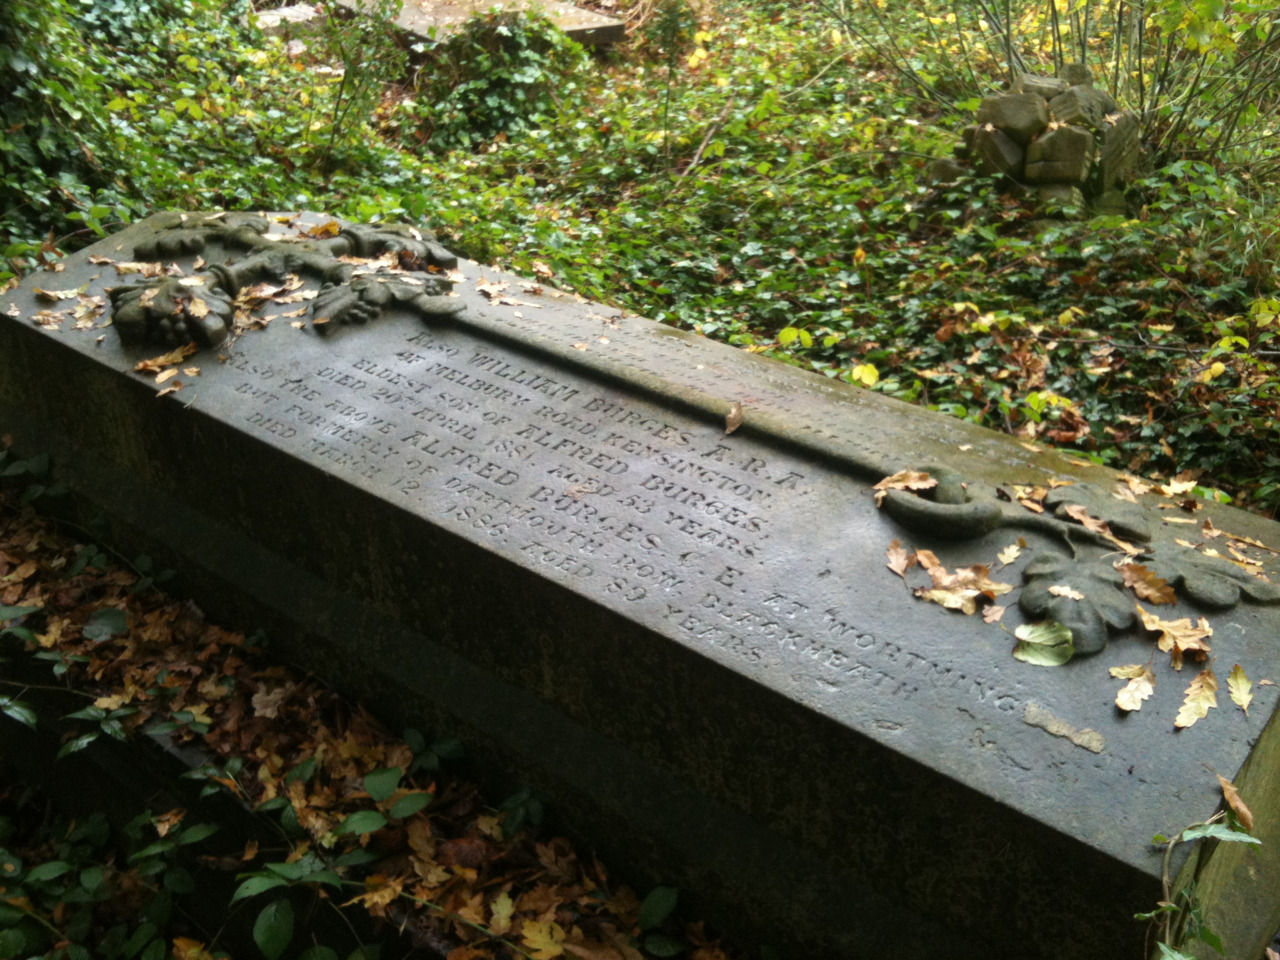 I found William Burges' tomb hidden in the undergrowth of  West Norwood Cemetary.